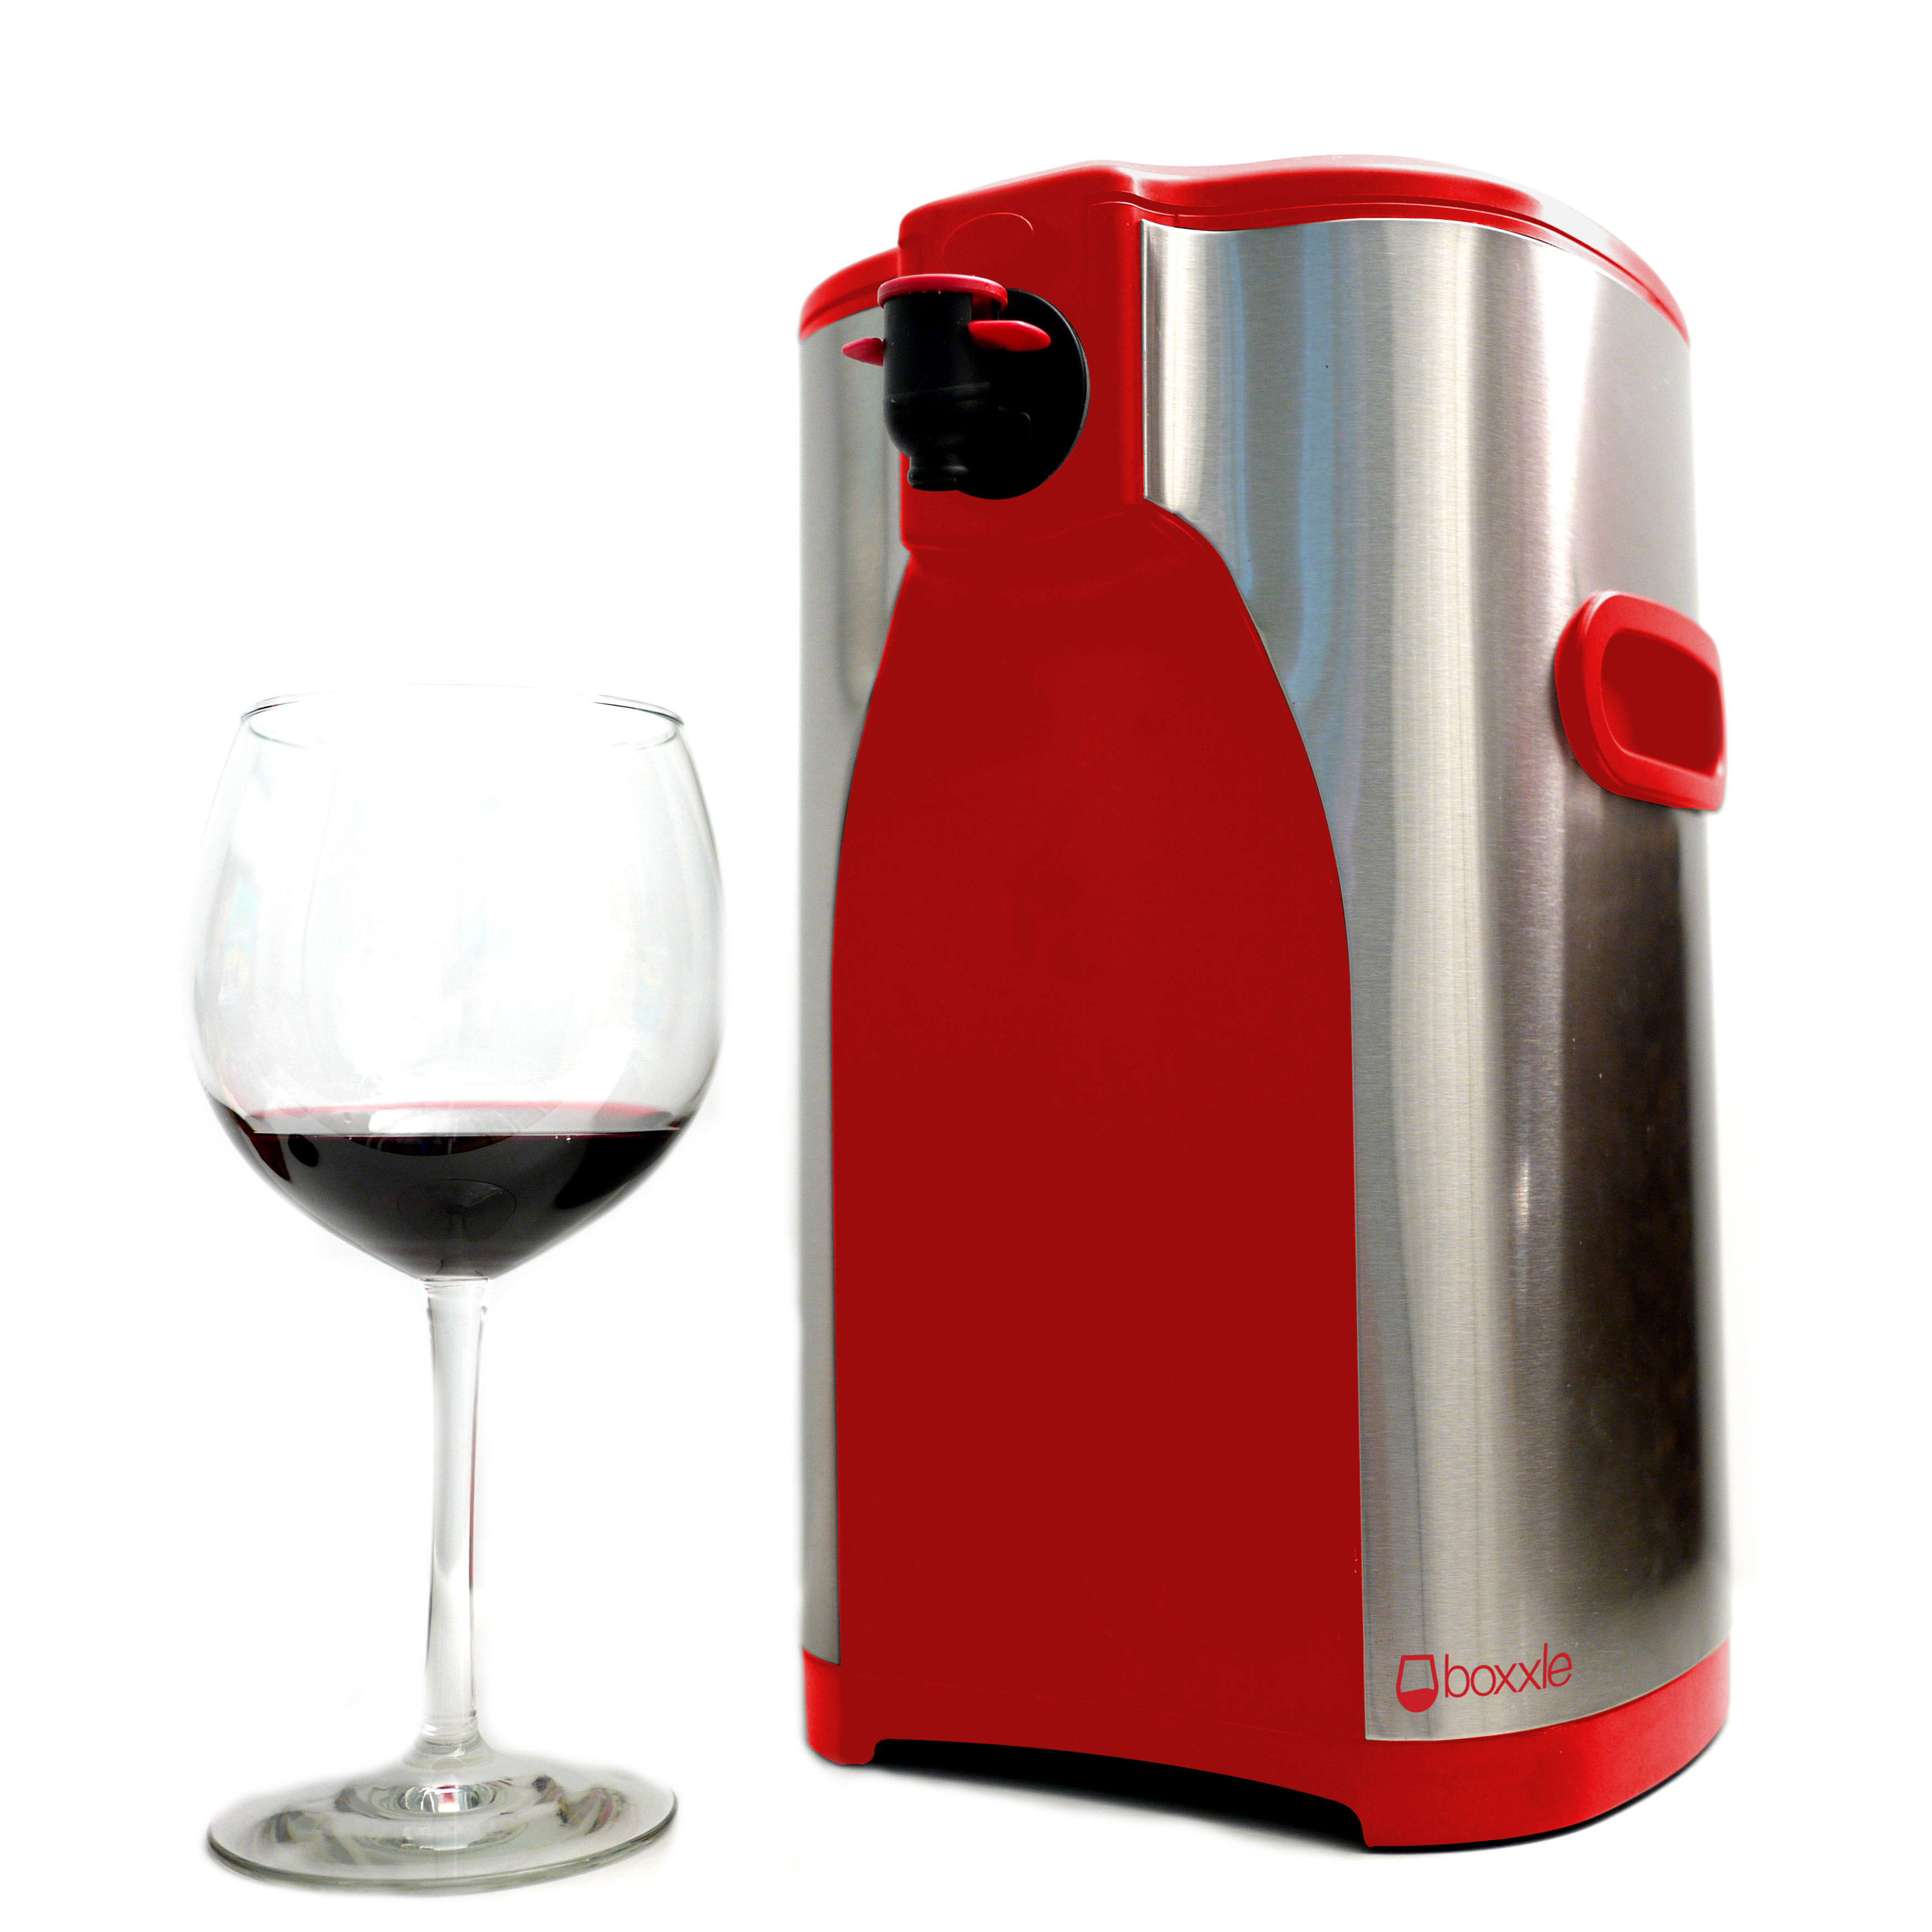 Boxxle Box Red and Stainless Steel 3 Liter Box Wine Dispenser